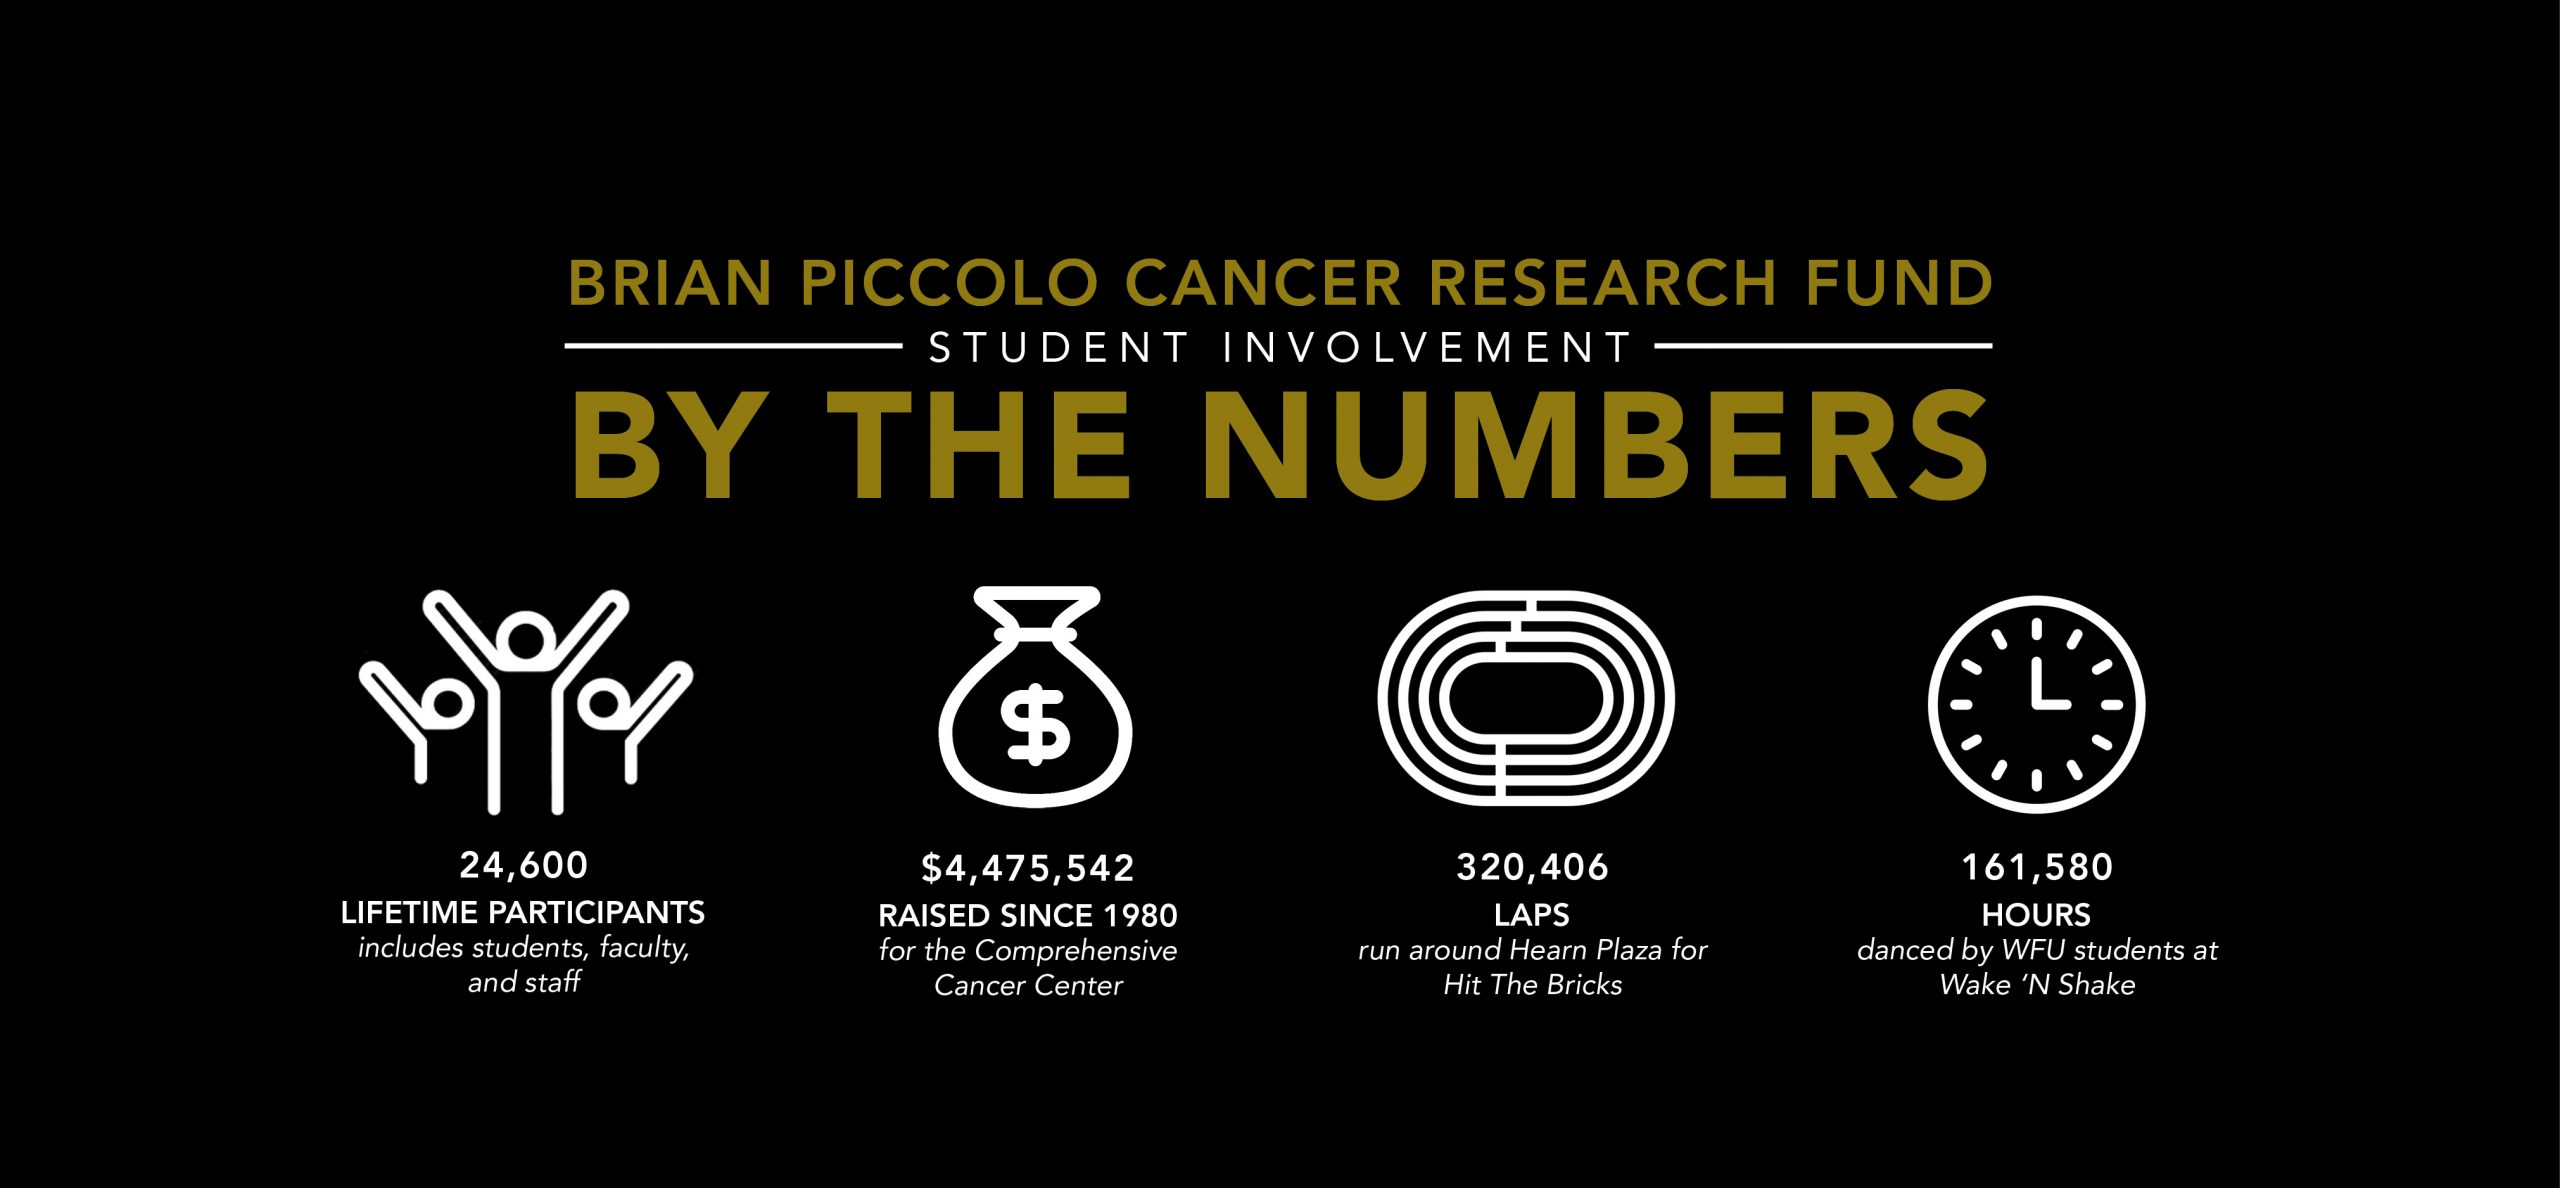 Brian Piccolo Cancer Research Fund By The Number - Lifetime-2020